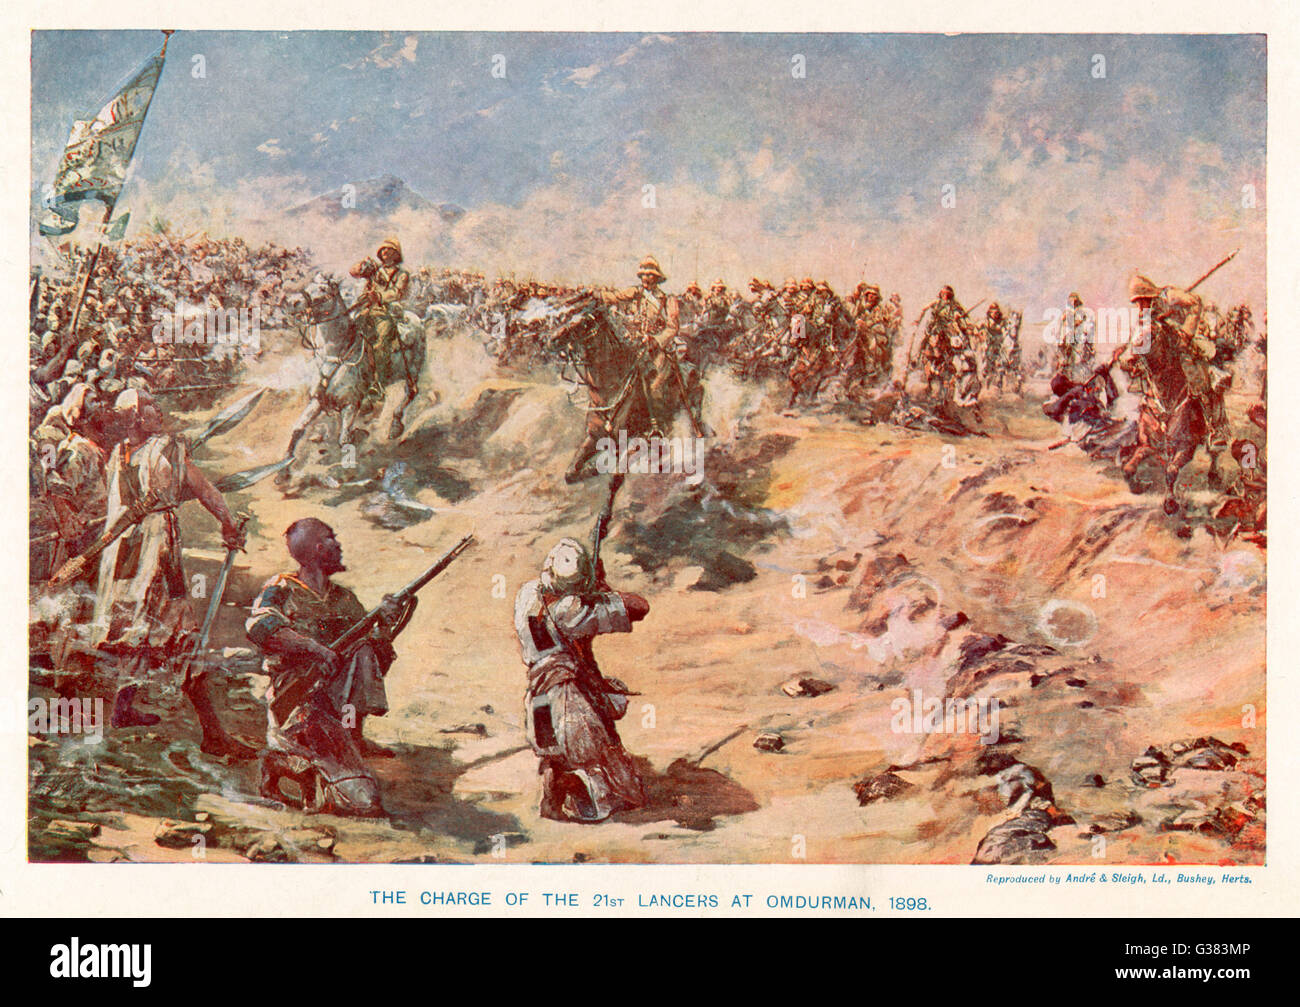 OMDURMAN The charge of the 21st Lancers         Date: 2 September 1898 - Stock Image